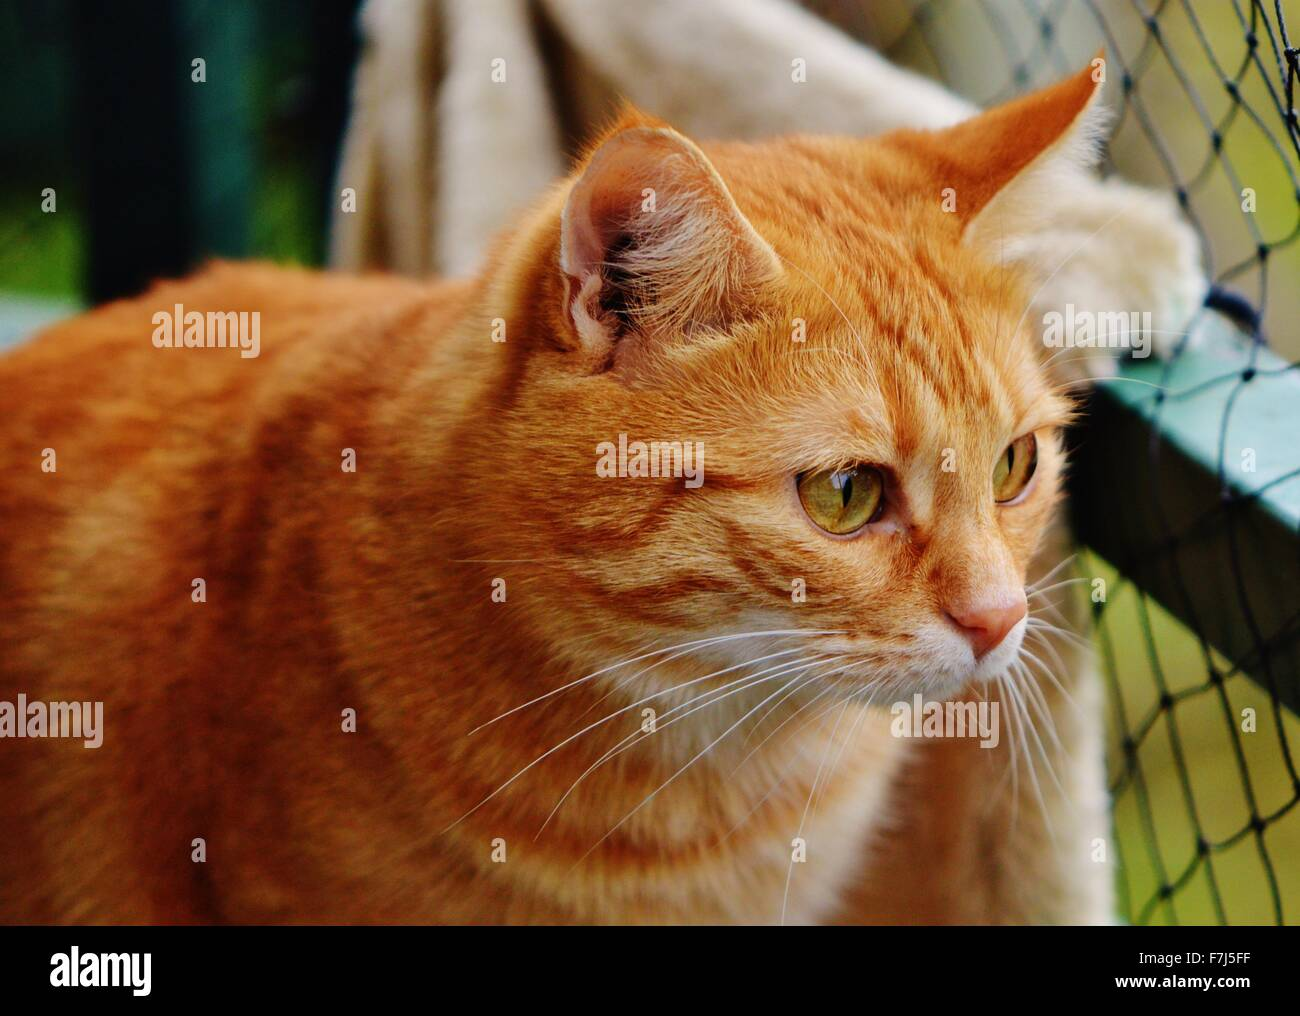 Close-up of a ginger tabby cat outside - Stock Image